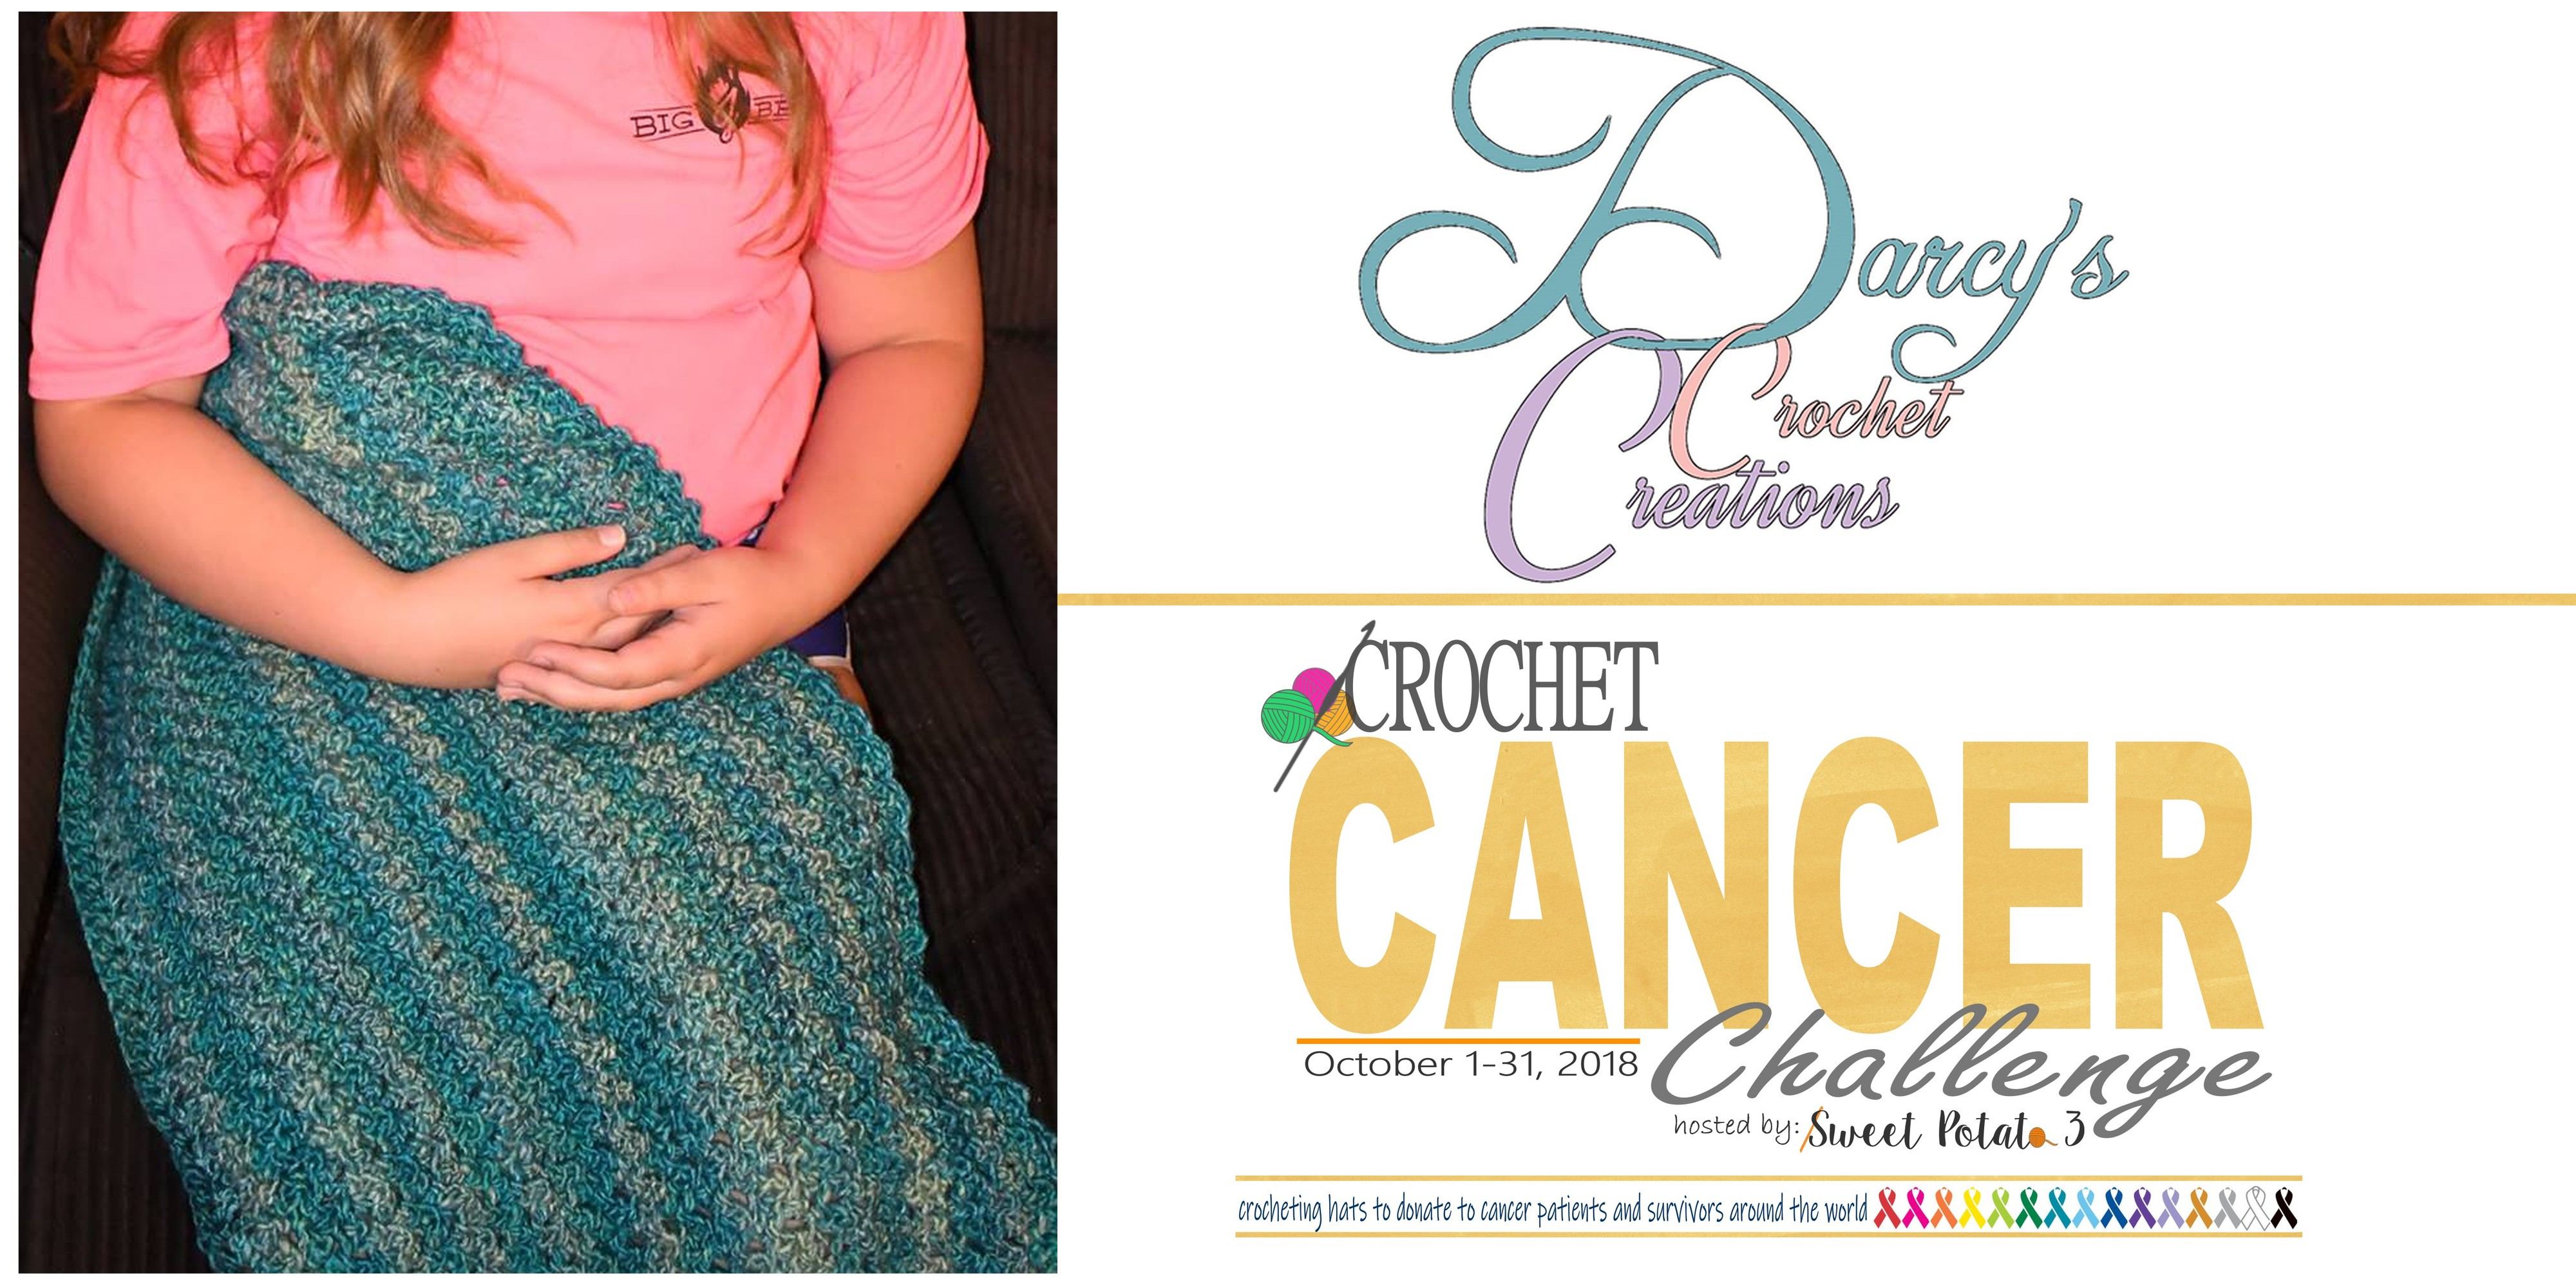 Day 6: Cancer Challenge – Darcy's Crochet Creations